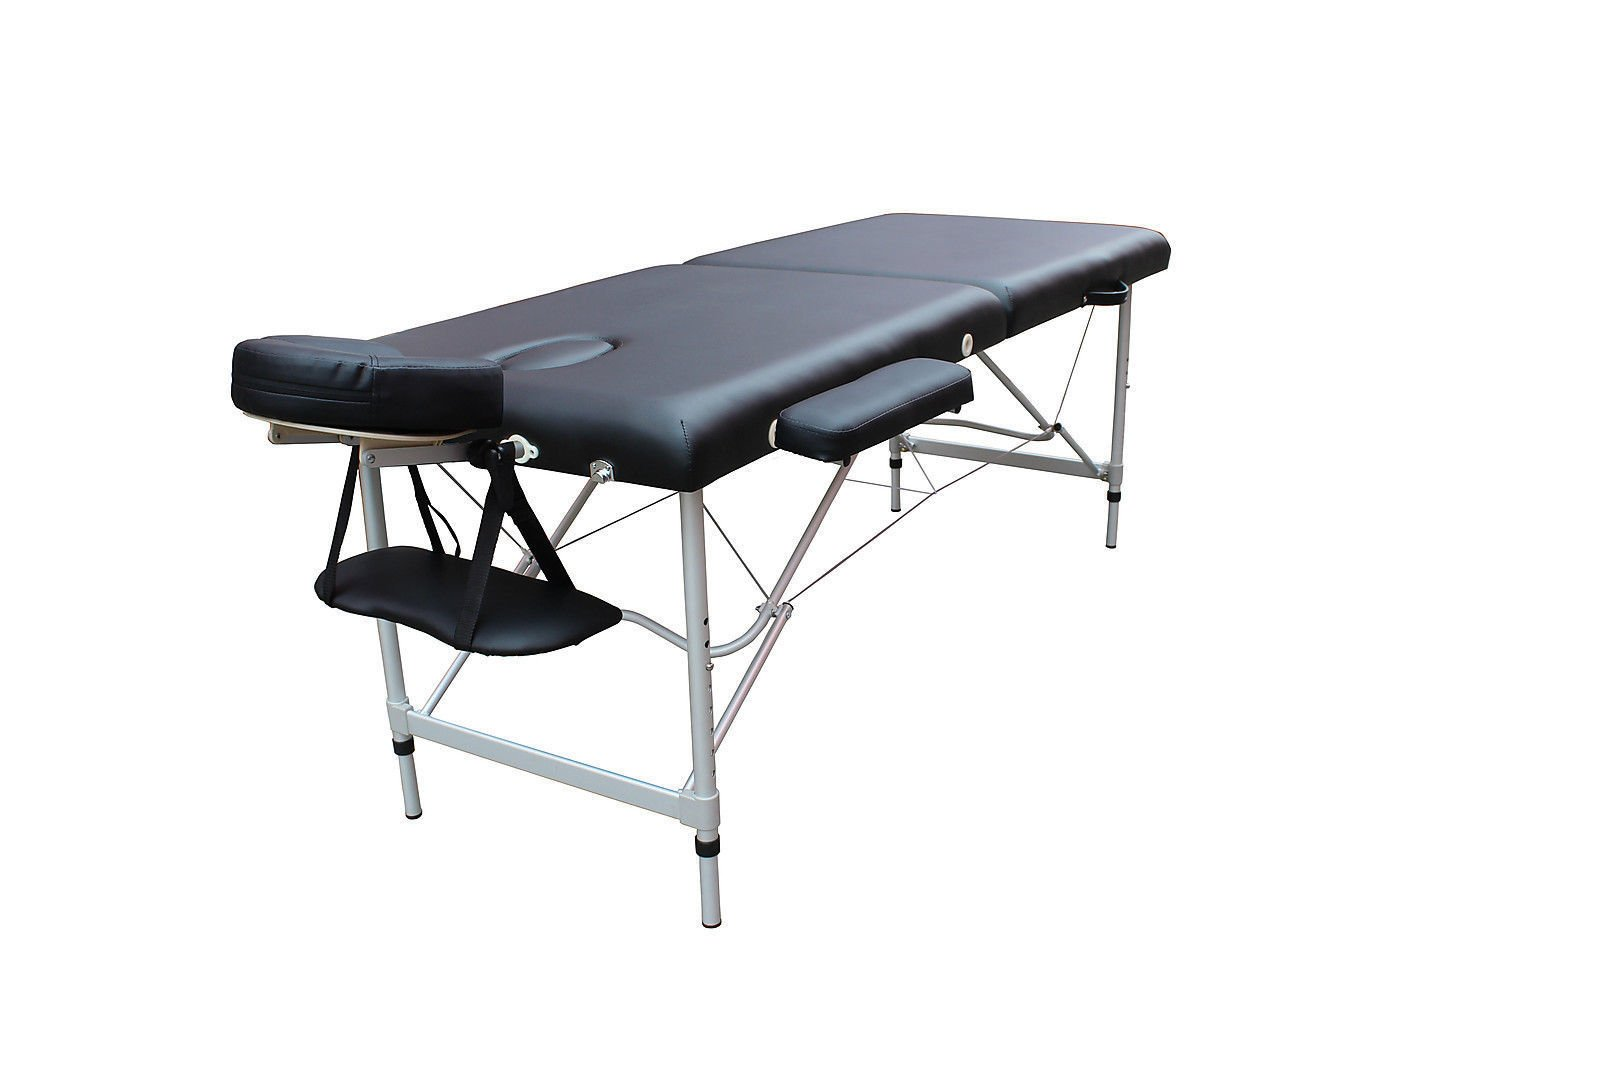 84''L Black 2 Fold Portable Massage Table Facial SPA Bed Tattoo w/Free Carry Case